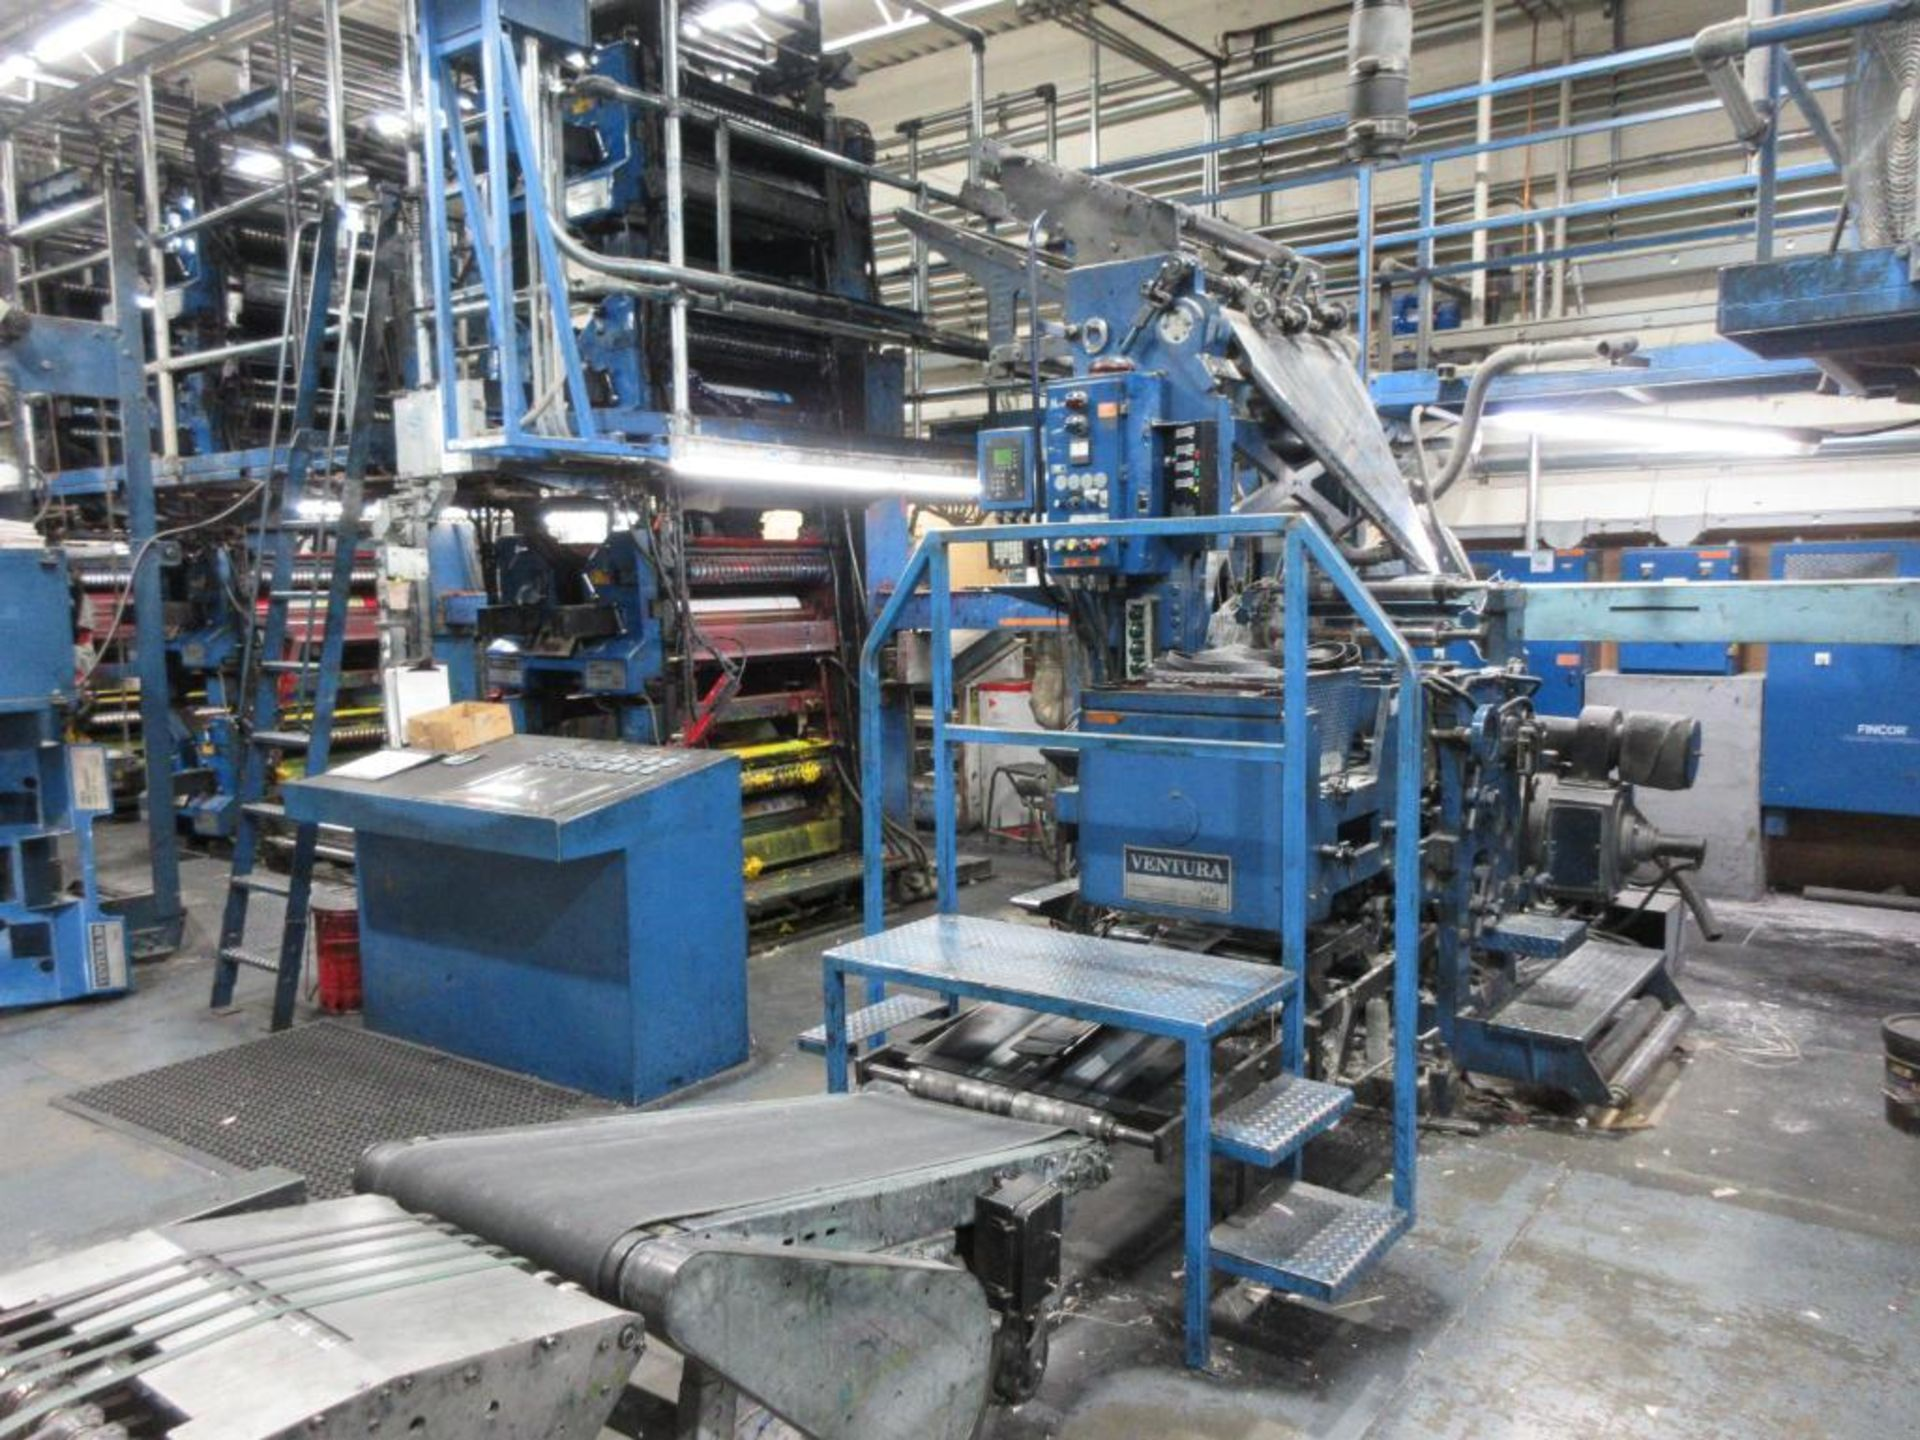 "Complete Goss/Ventura 22.75"" cut off 50 unit web offset press featuring: Ventura 30 4 high (0), Vent - Image 19 of 58"